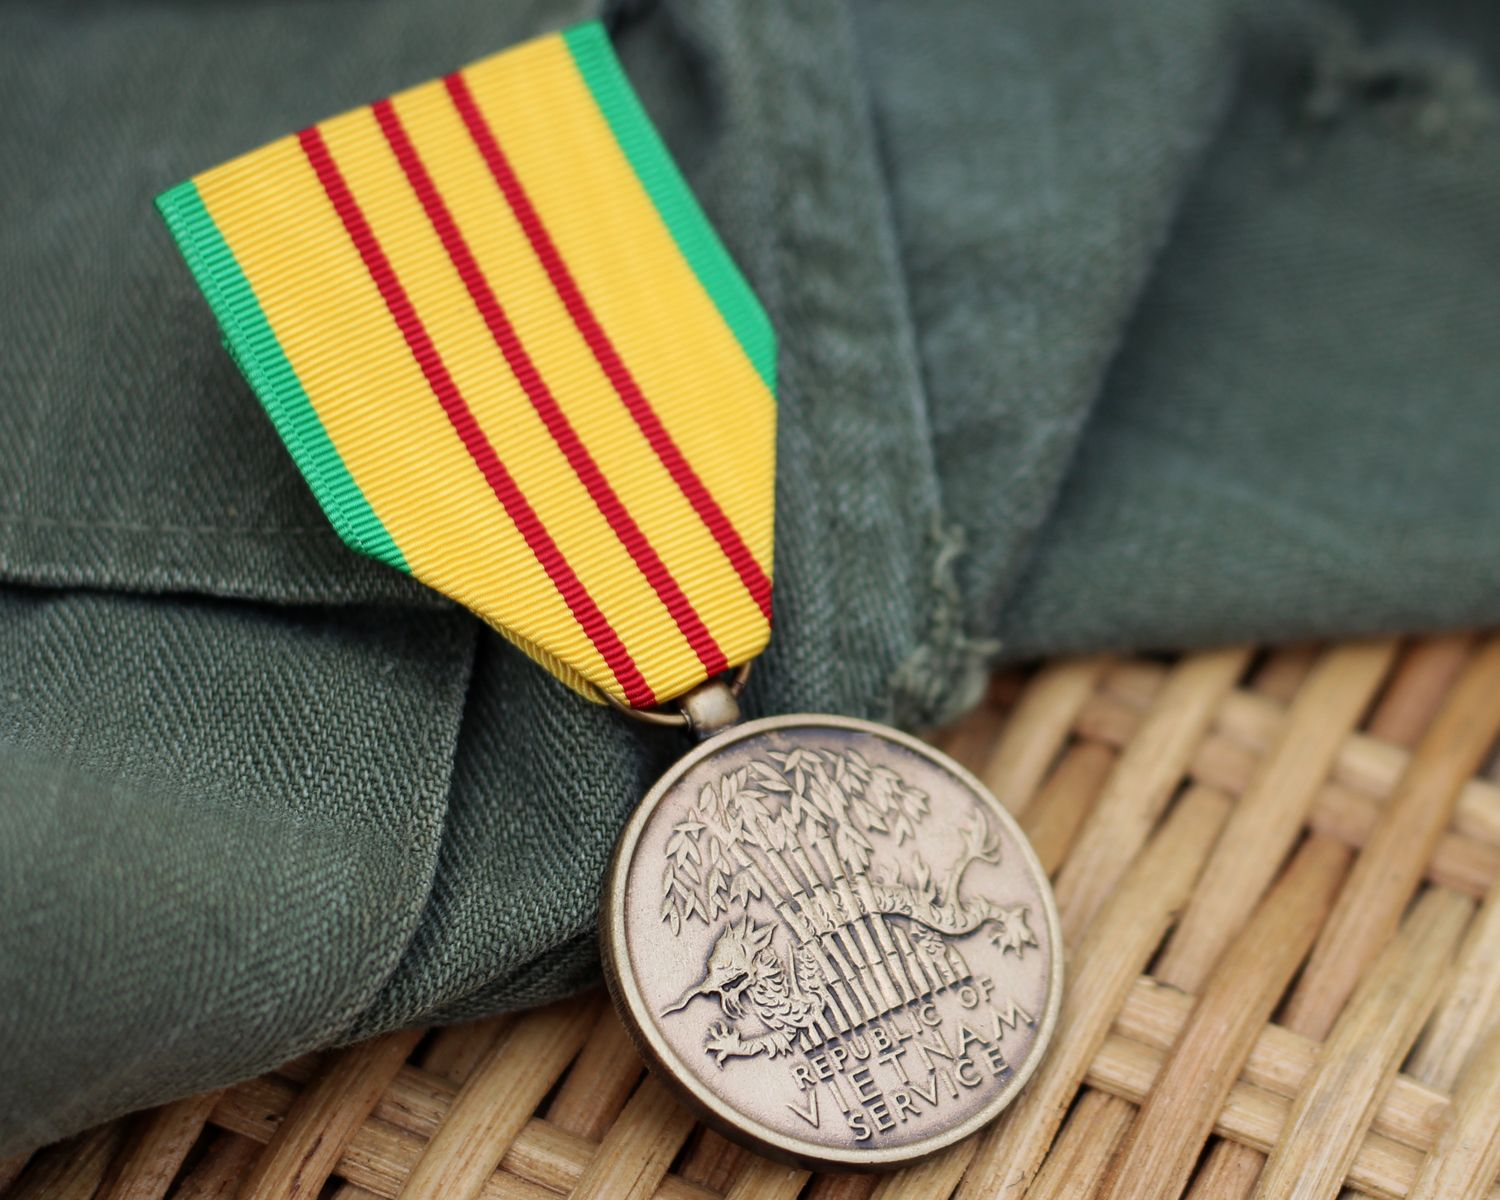 Vietnam War Medals And Their Meanings Medals Of America War Medals Vietnam War Vietnam